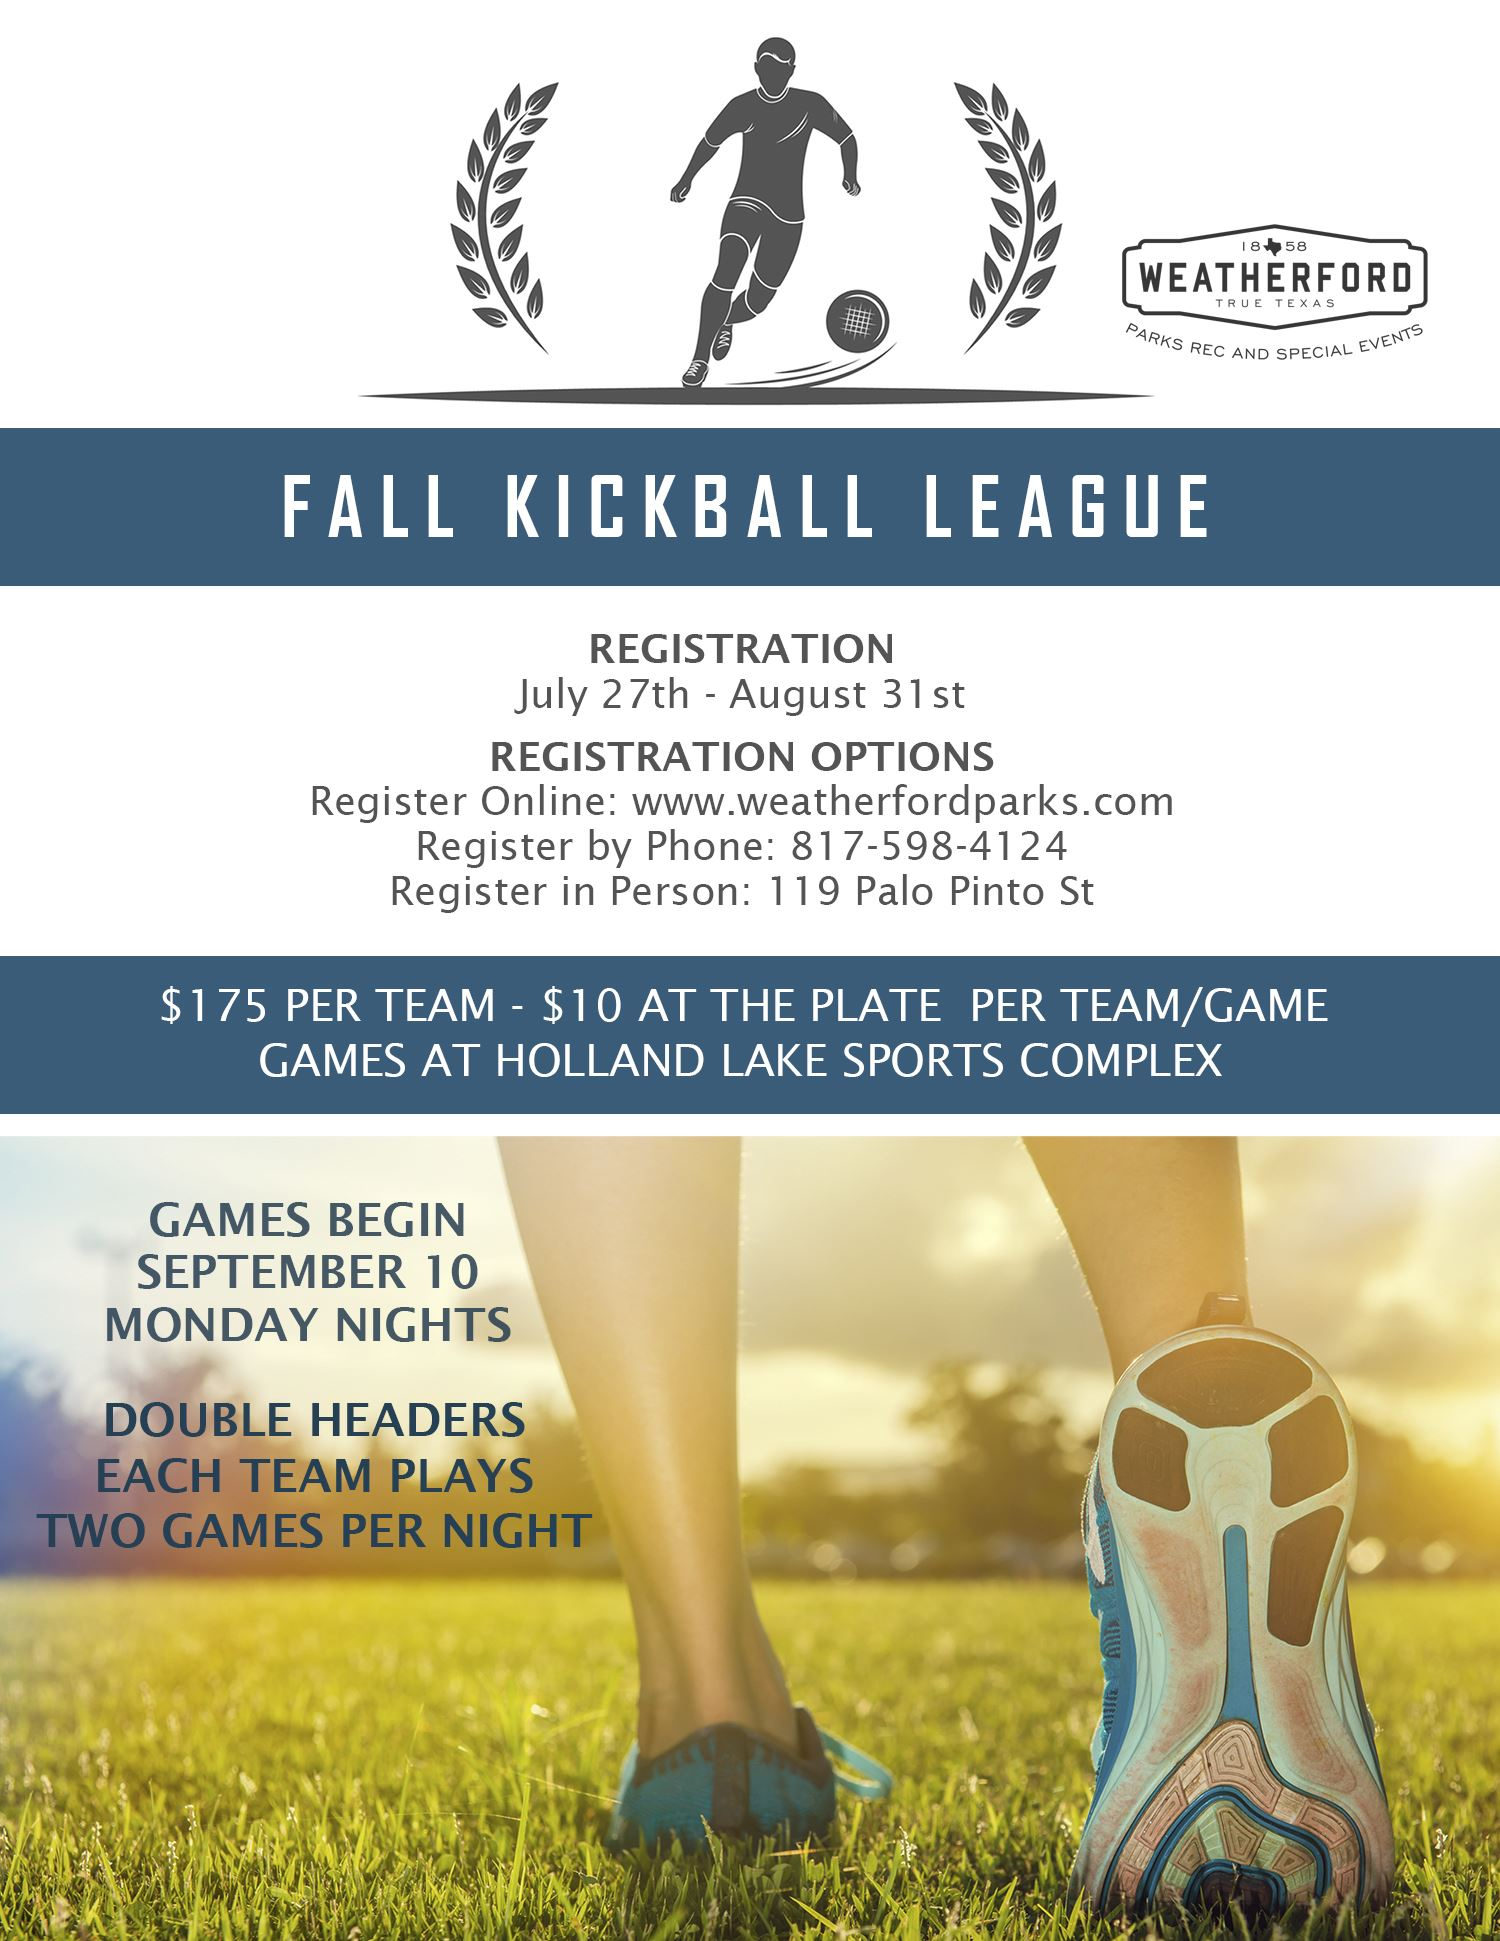 FALL 2018 Kickball Flyer price change